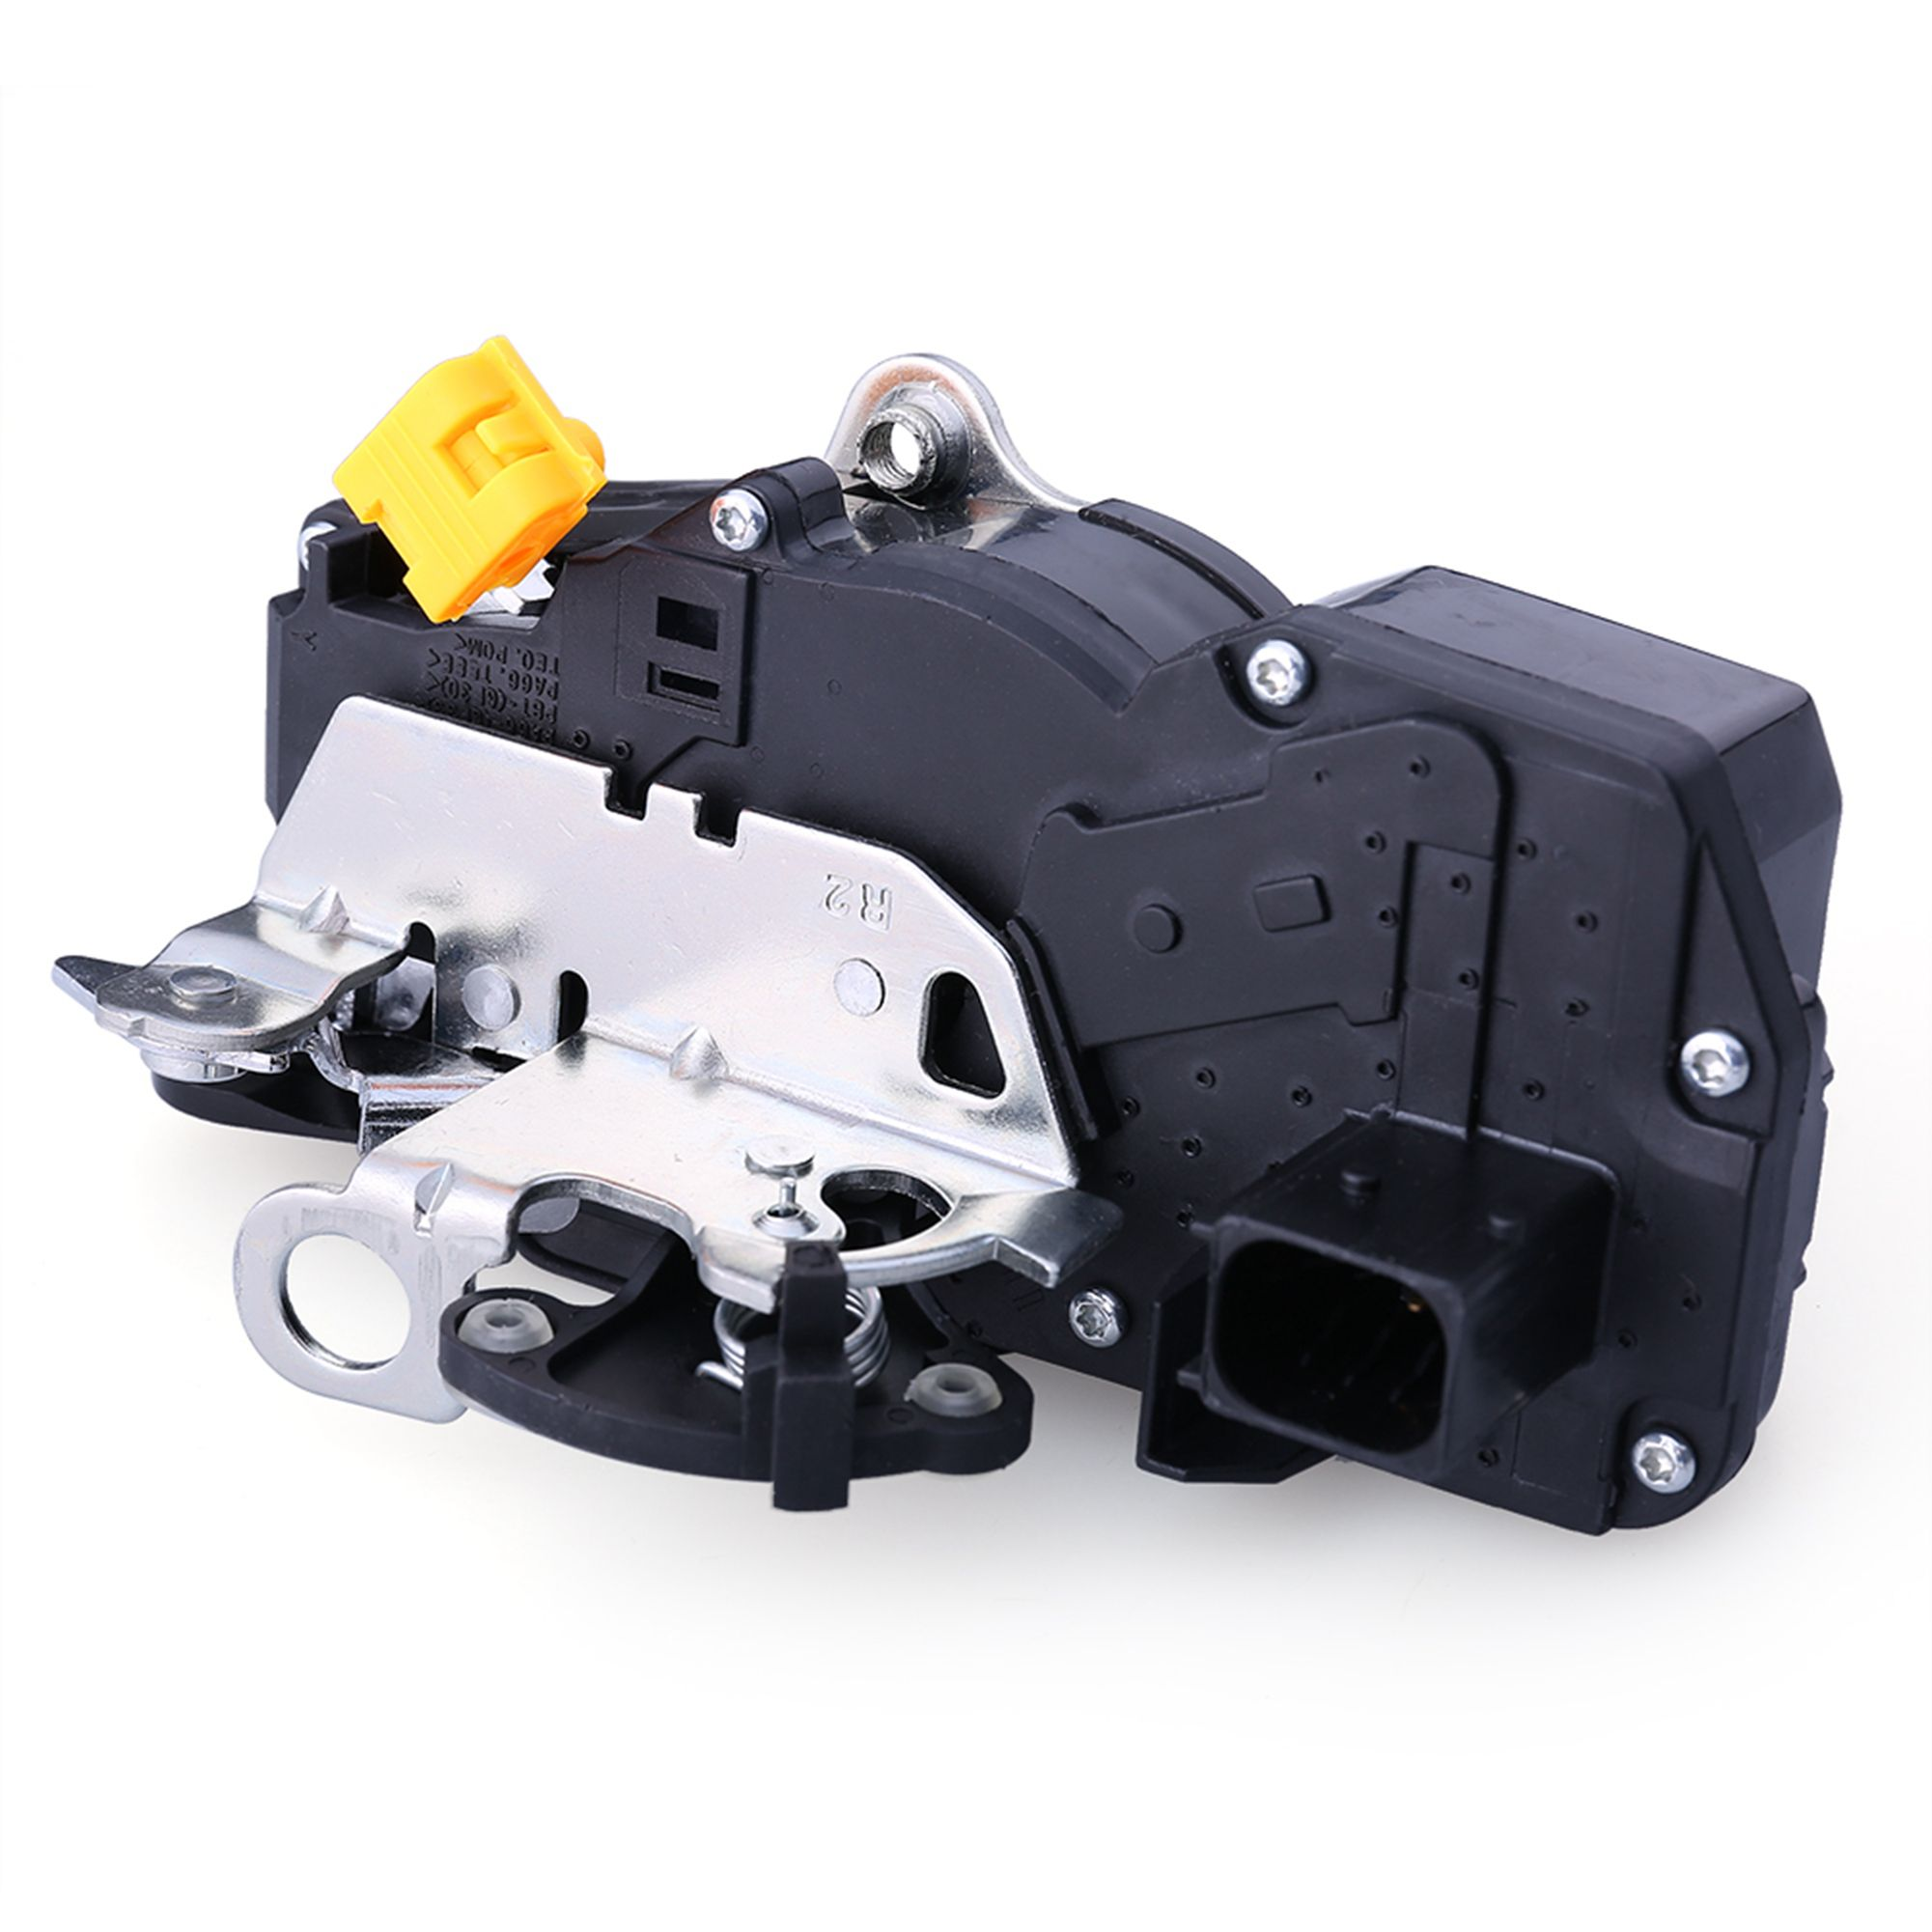 Fit for 2007 2008 Cadillac Escalade Chevy Avalanche Suburban Tahoe GMC Yukon Replace # 20783852 25876388 25873485 25945754 Front Right Passenger Side 931-304 Door Lock Actuator